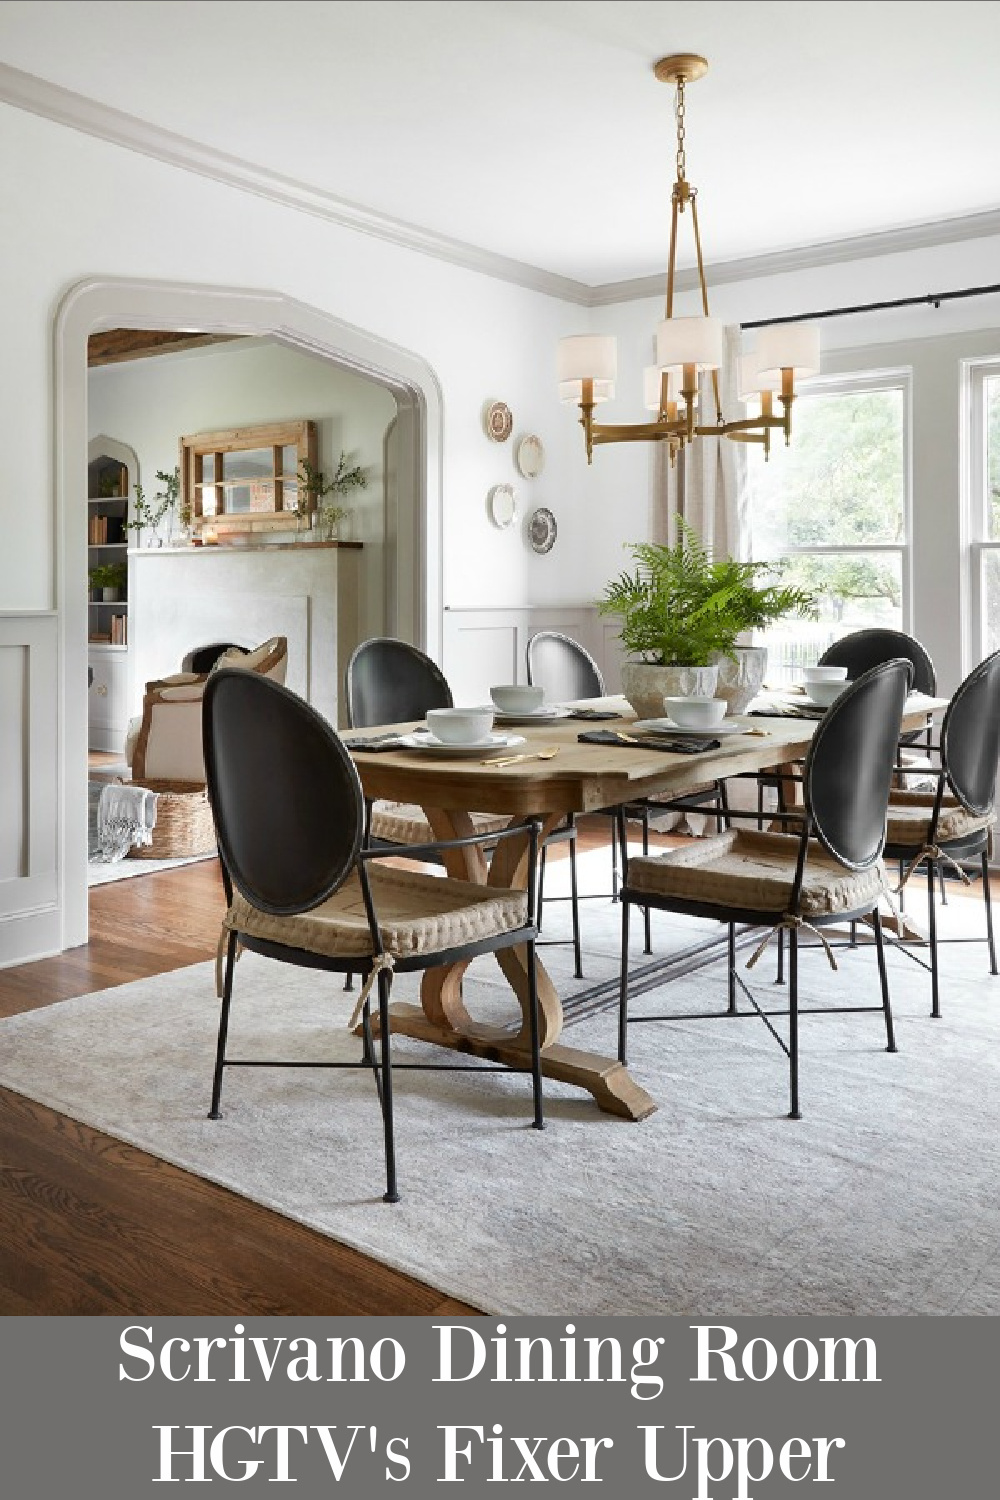 Scrivano dining room from the episode of Fixer Upper (HGTV) with a Tudor cottage renovation. #scrivanorenovation #diningroom #fixerupper